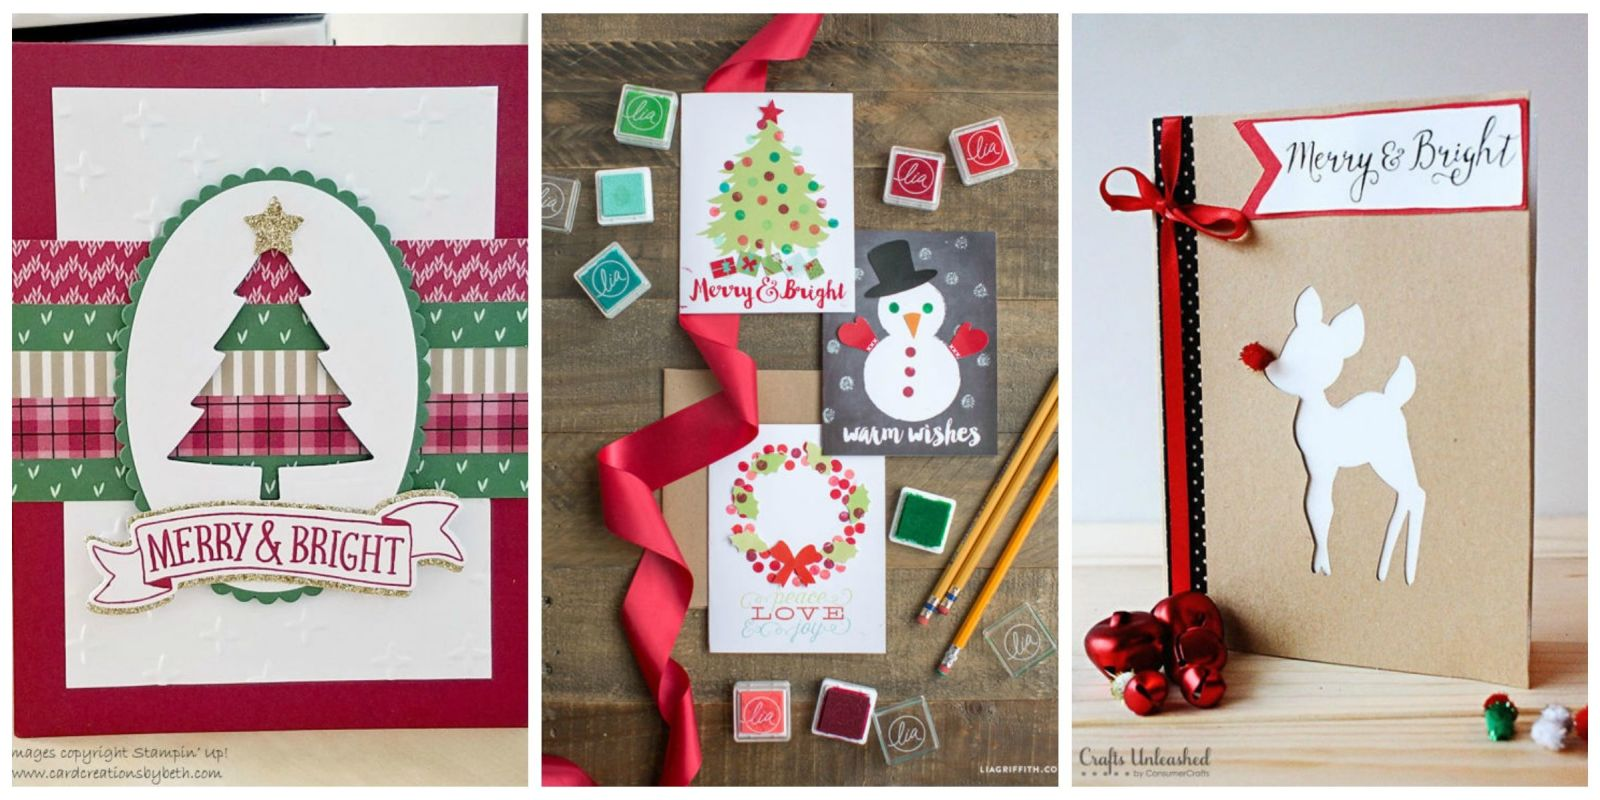 15 Diy Christmas Card Ideas Easy Homemade Christmas